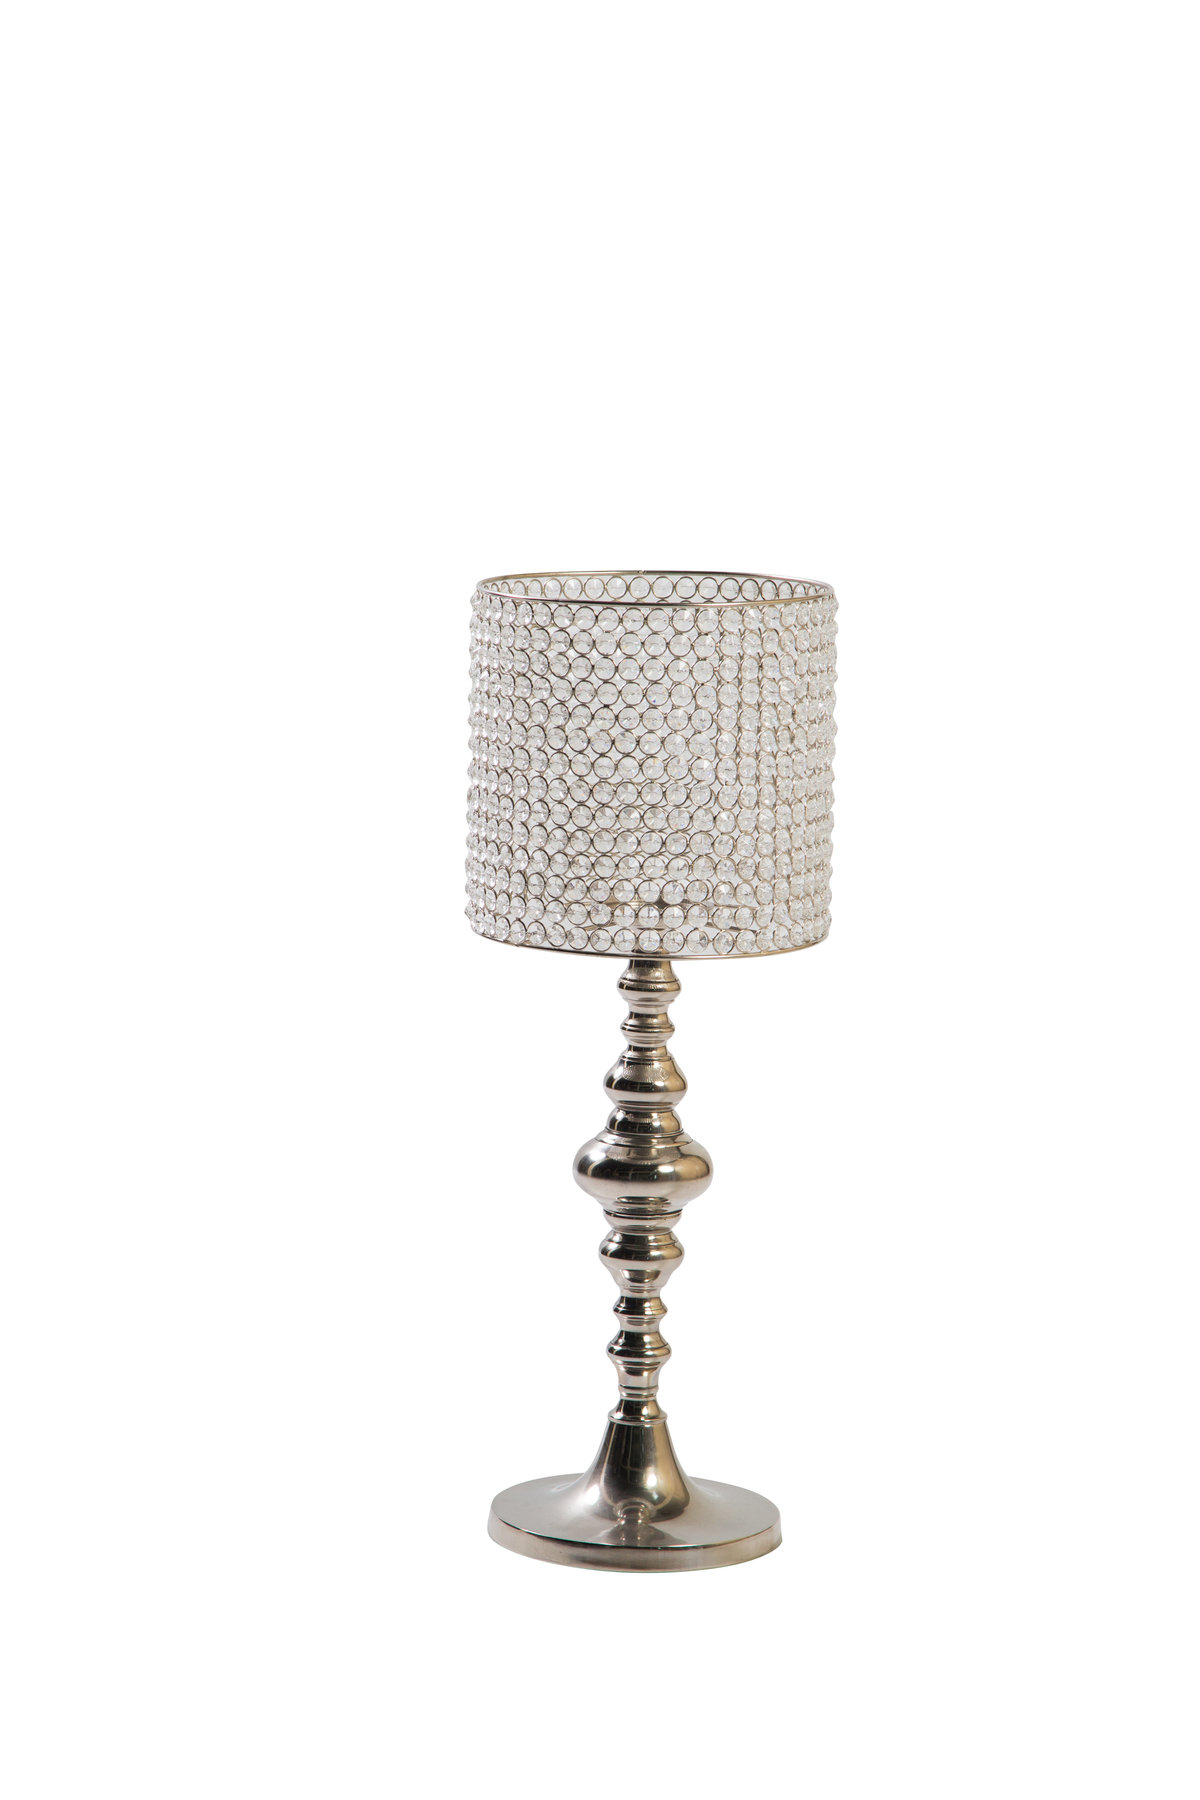 Bling Lamp Centerpiece